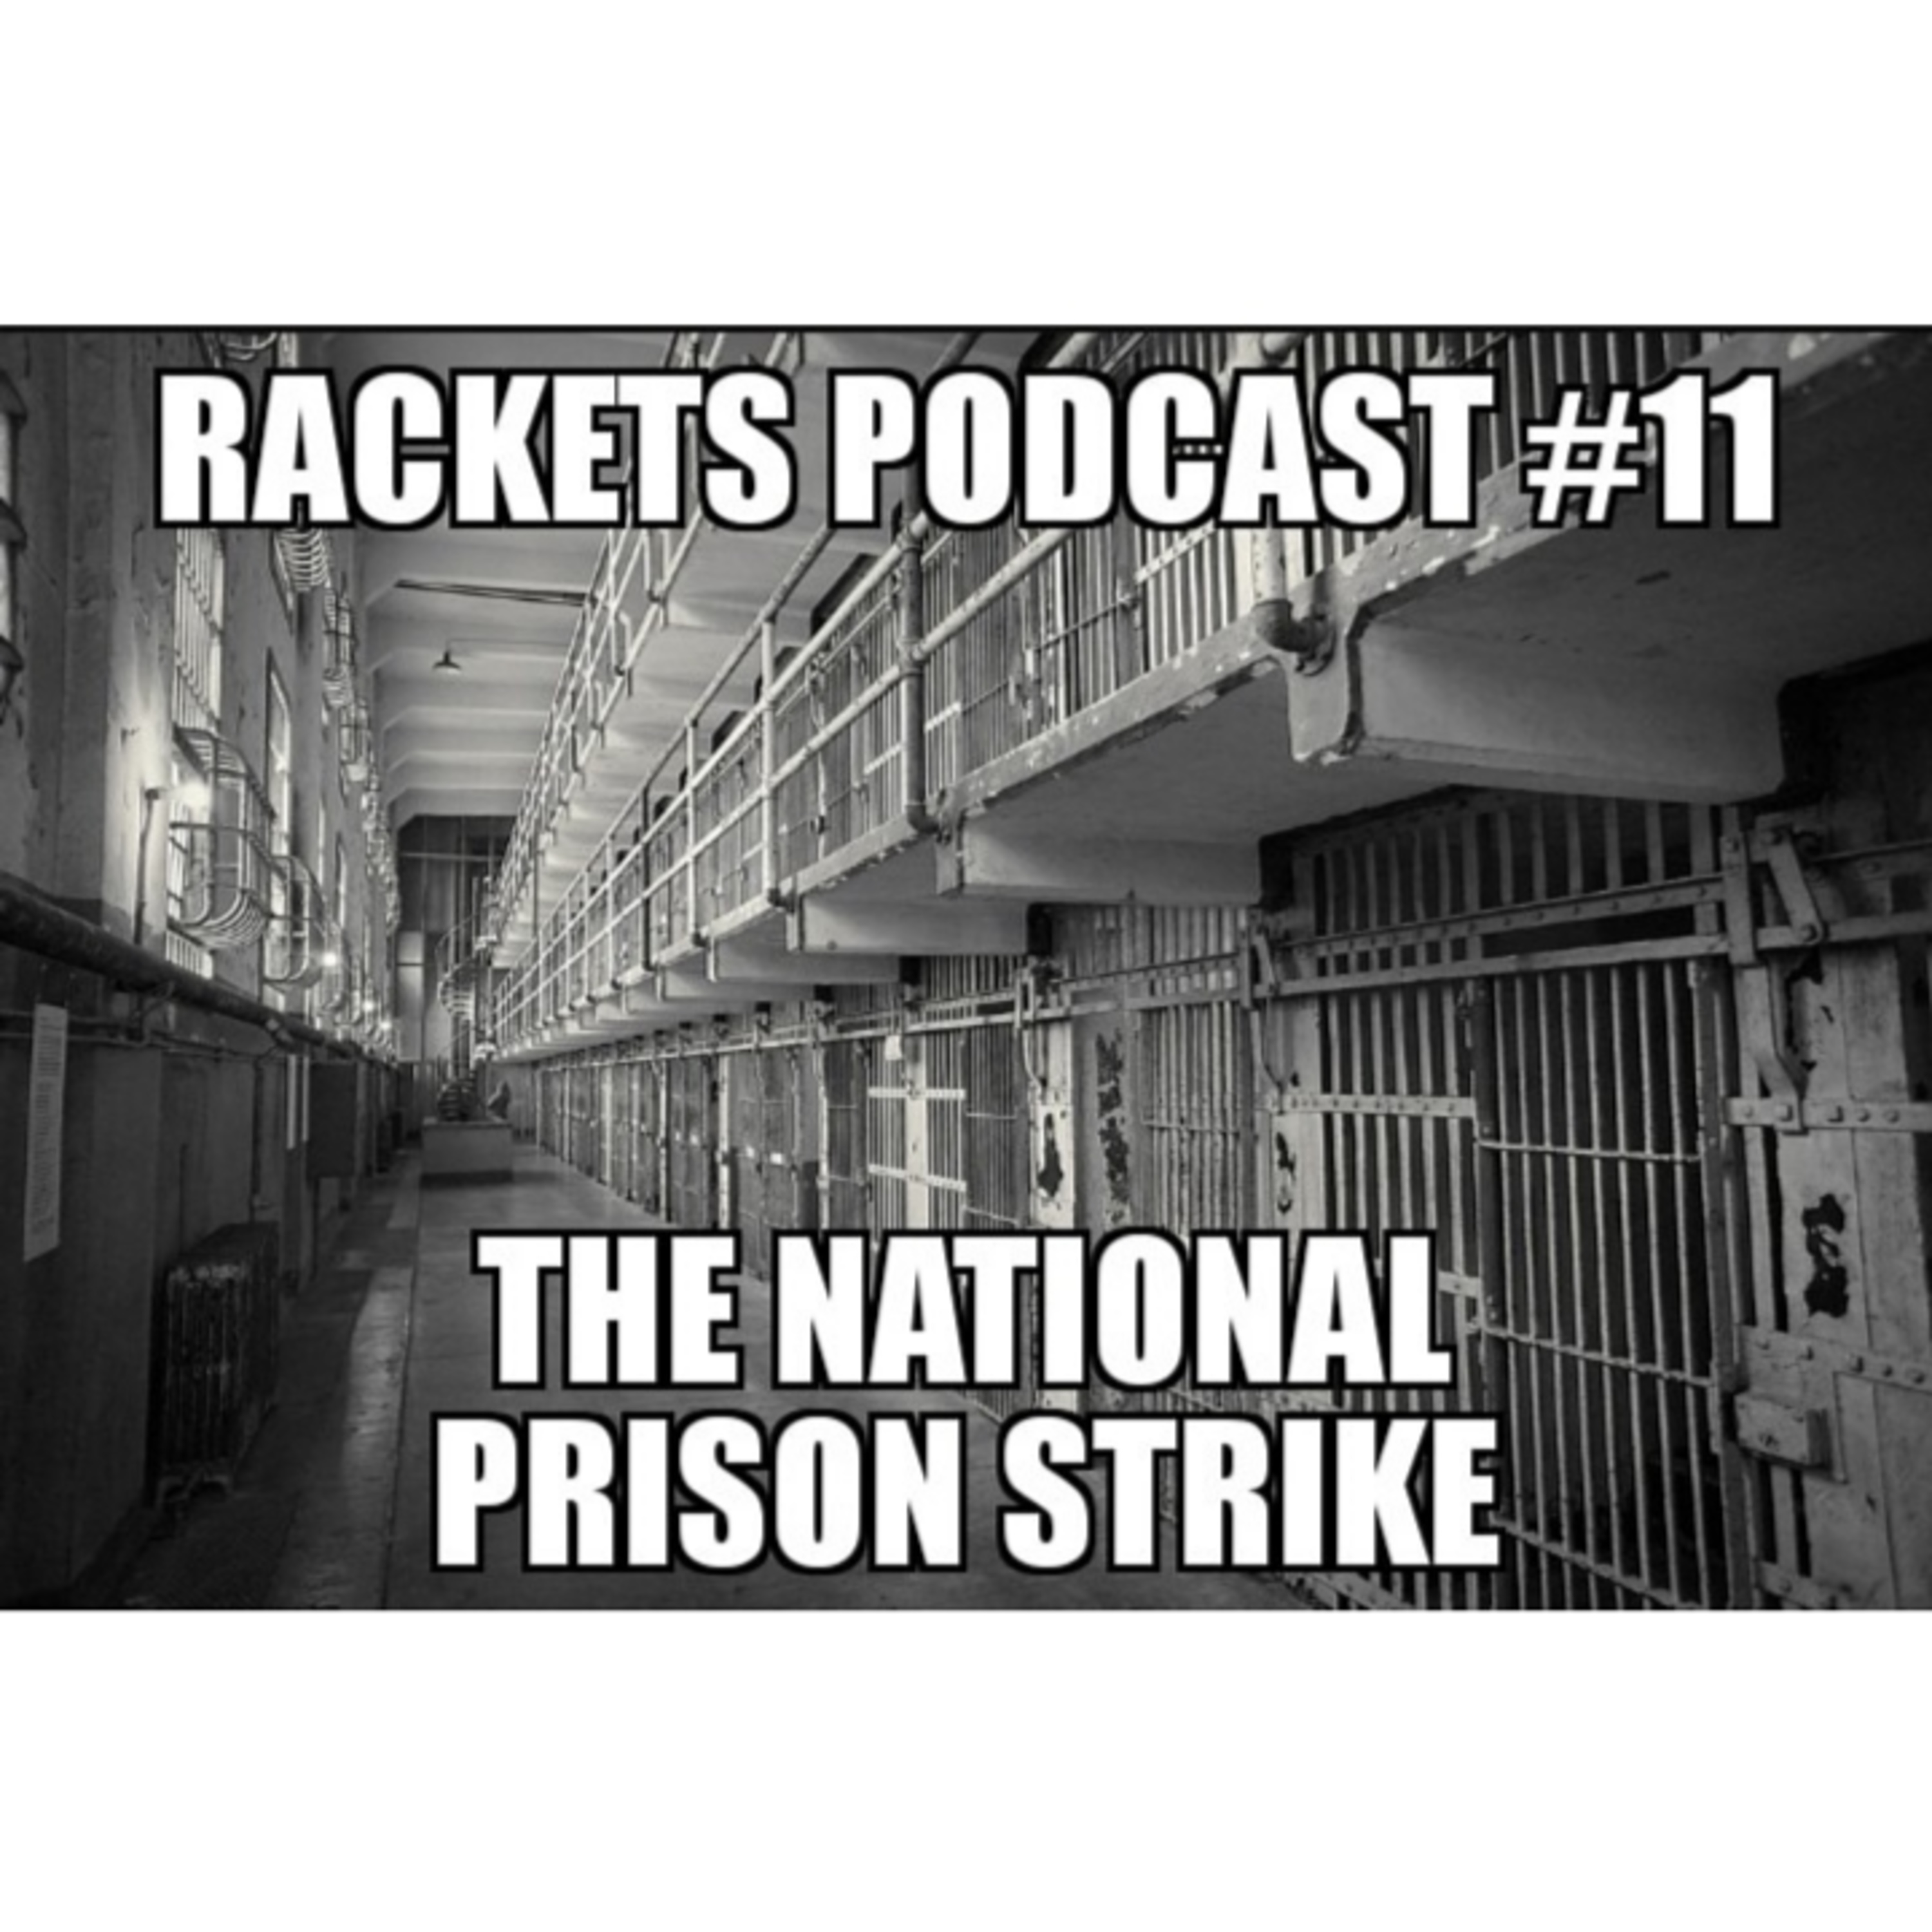 The National Prison Strike